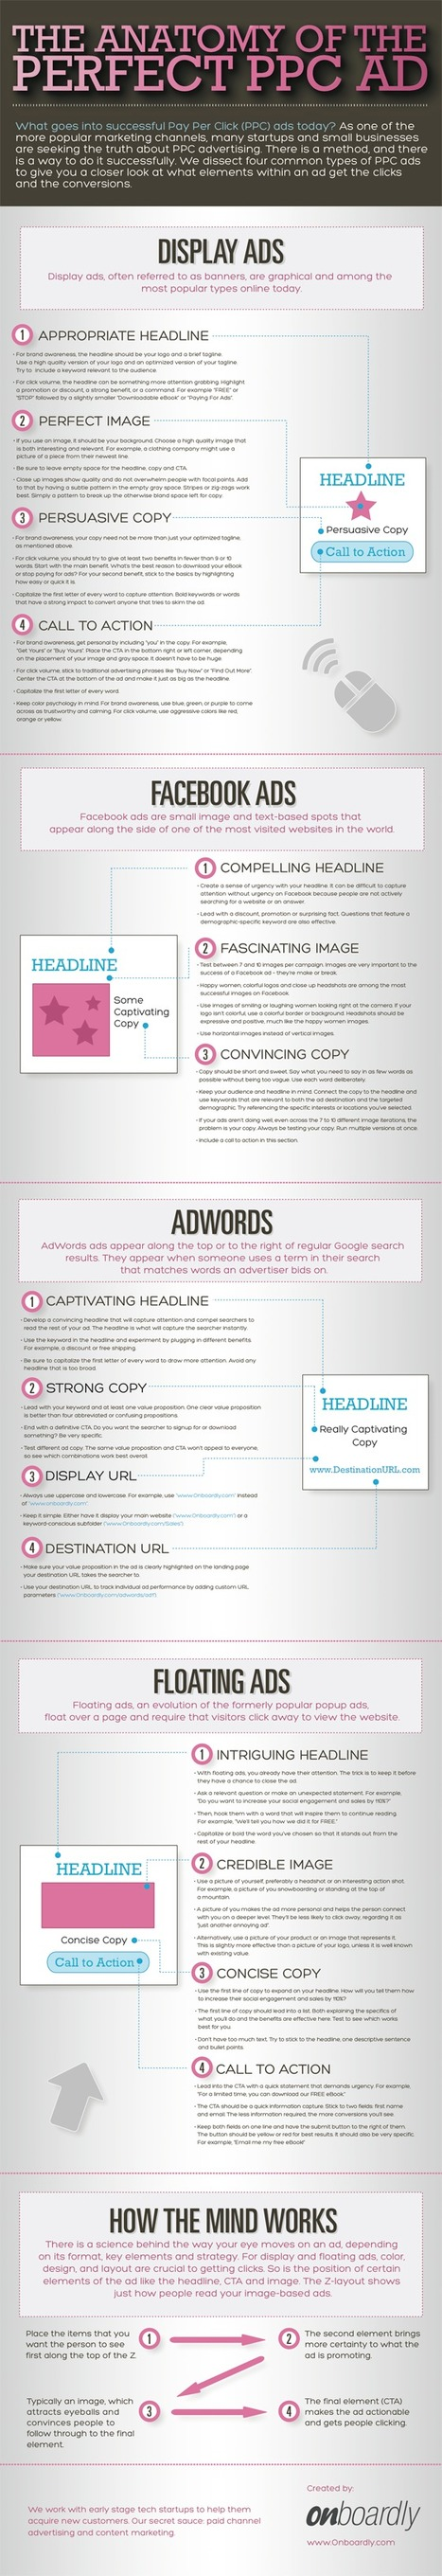 The Anatomy of the Perfect PPC Ad [Infographic] | Unbounce | Social Mercor | Scoop.it